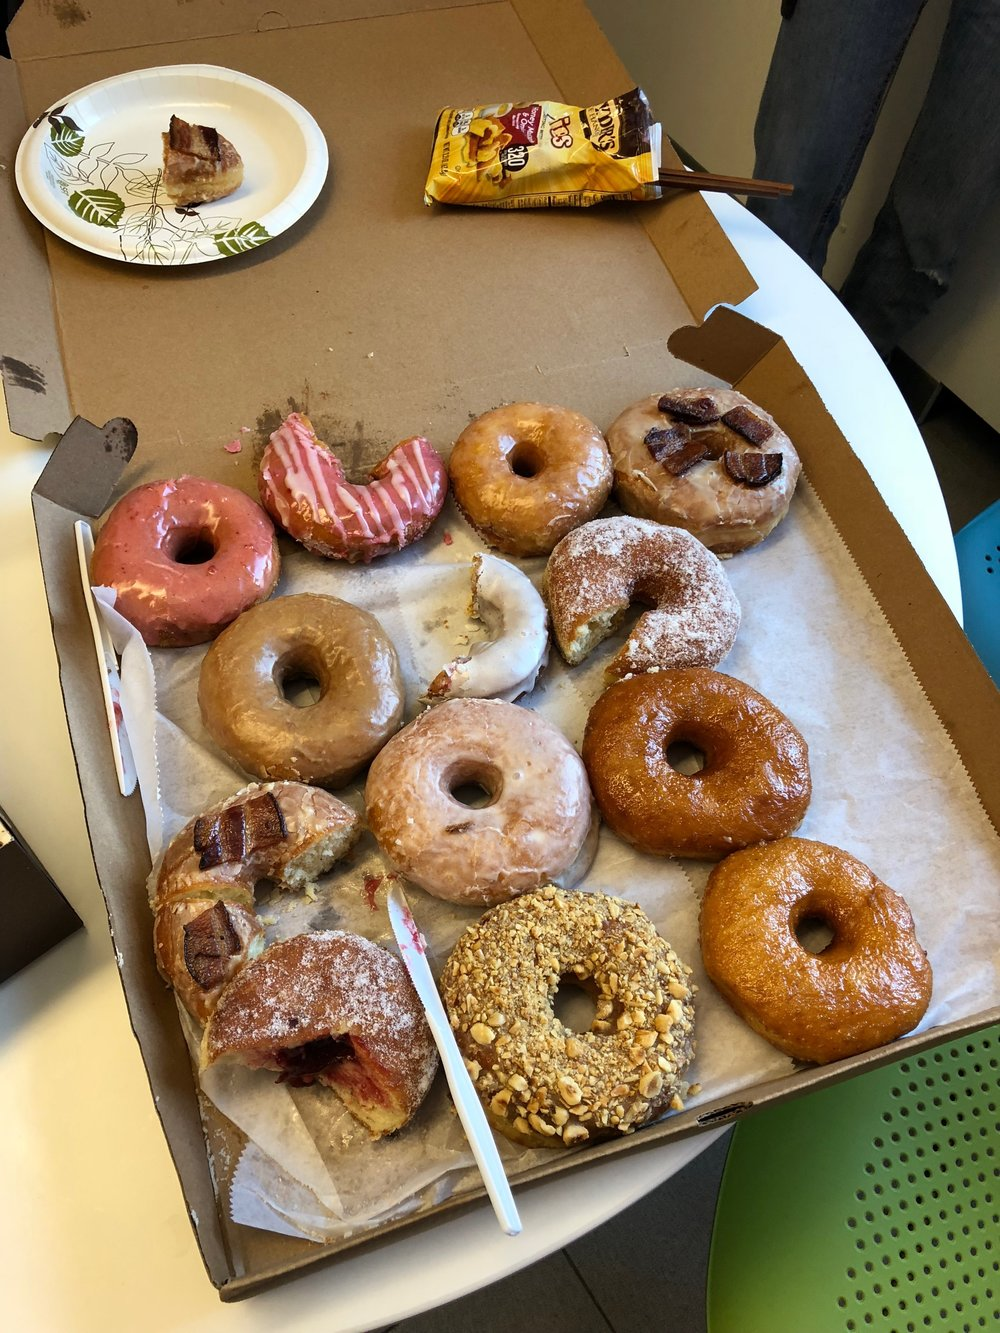 Donuts from the weekly farmer's market provided by the Principal Investigator himself. In the background, you can spy some of the pretzels the lab is addicted to, along with a set of chopsticks for mess-free eating.